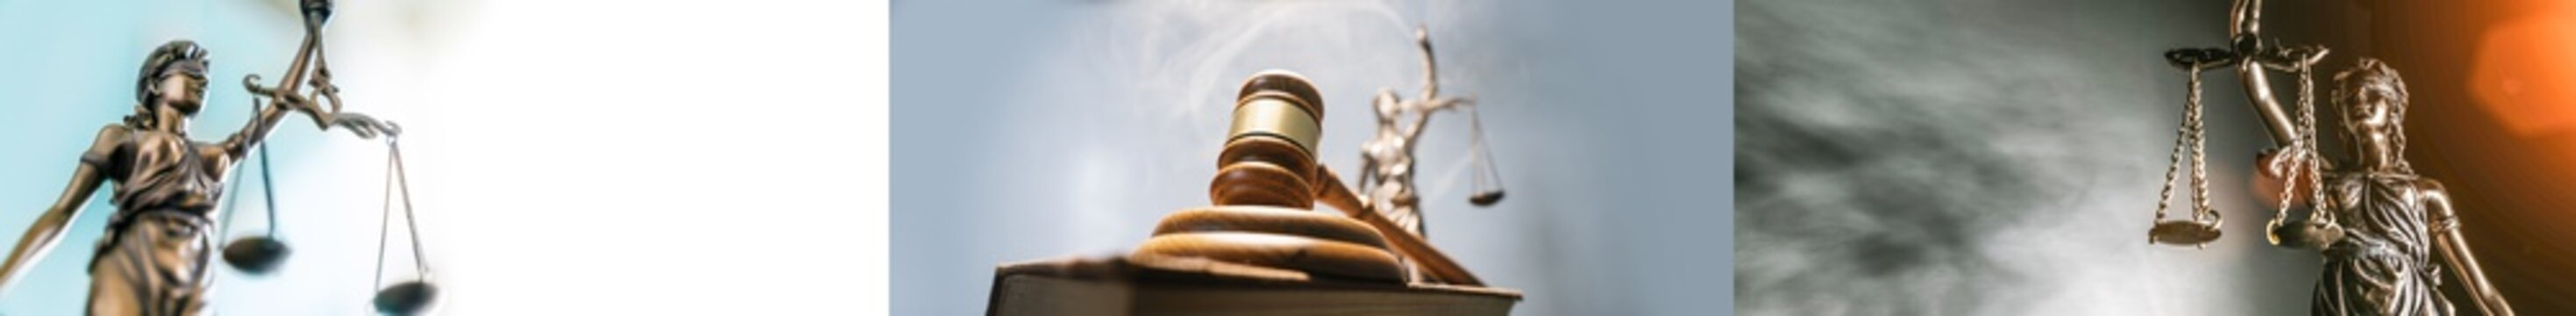 Statue of lady justice on bright background - Side view with copy space.